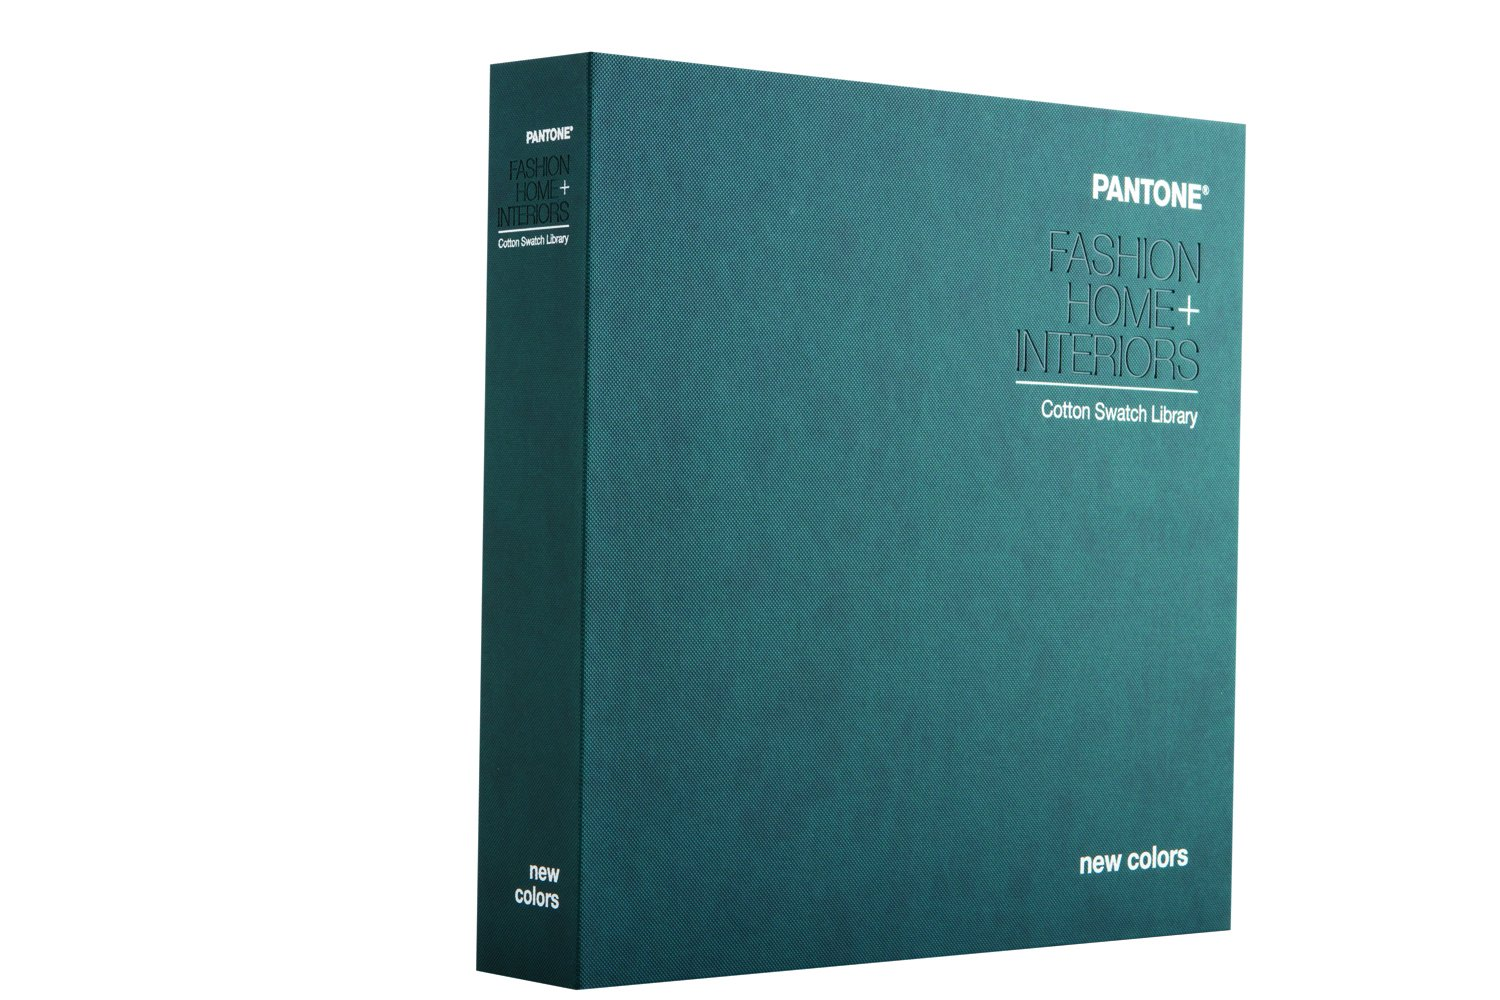 Pantone Cotton Swatch Library Supplement, FHIC110